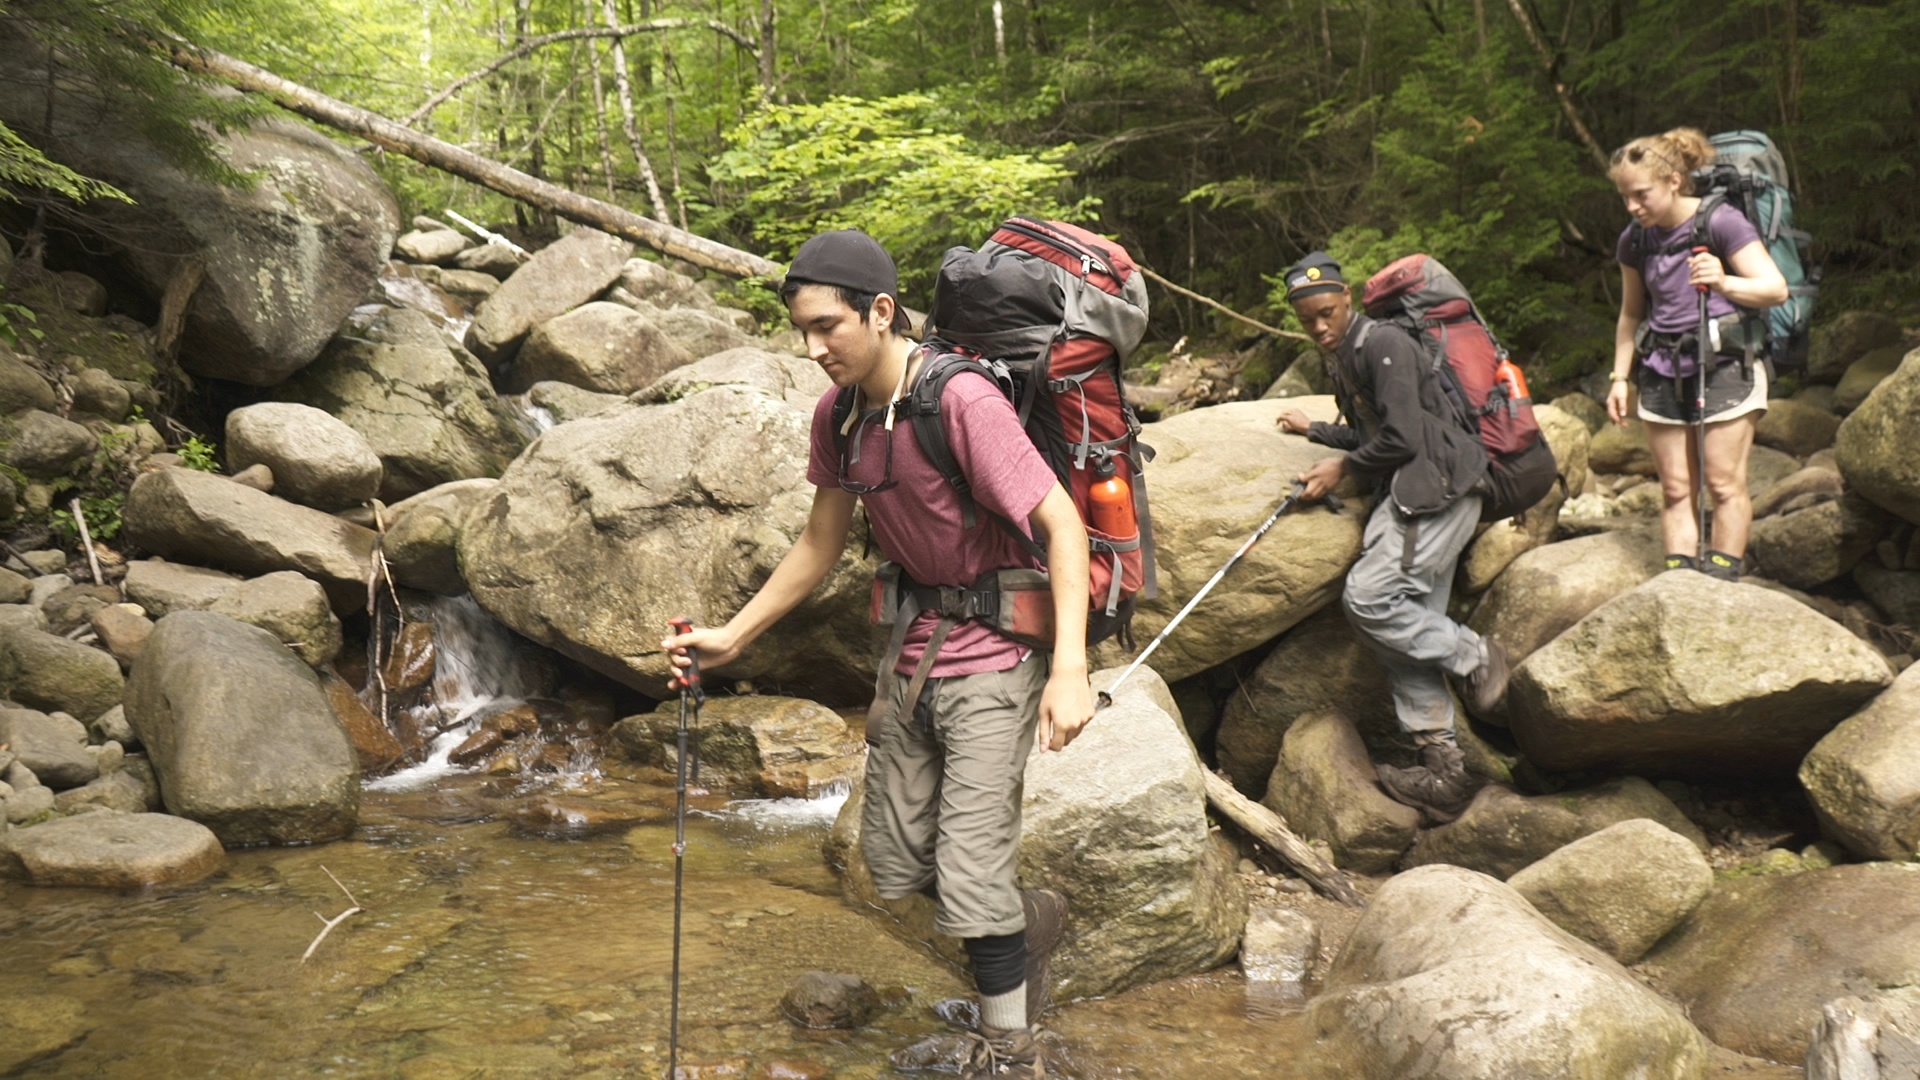 students wearing backpacks use trekking poles to cross a rocky creek in the Adirondacks